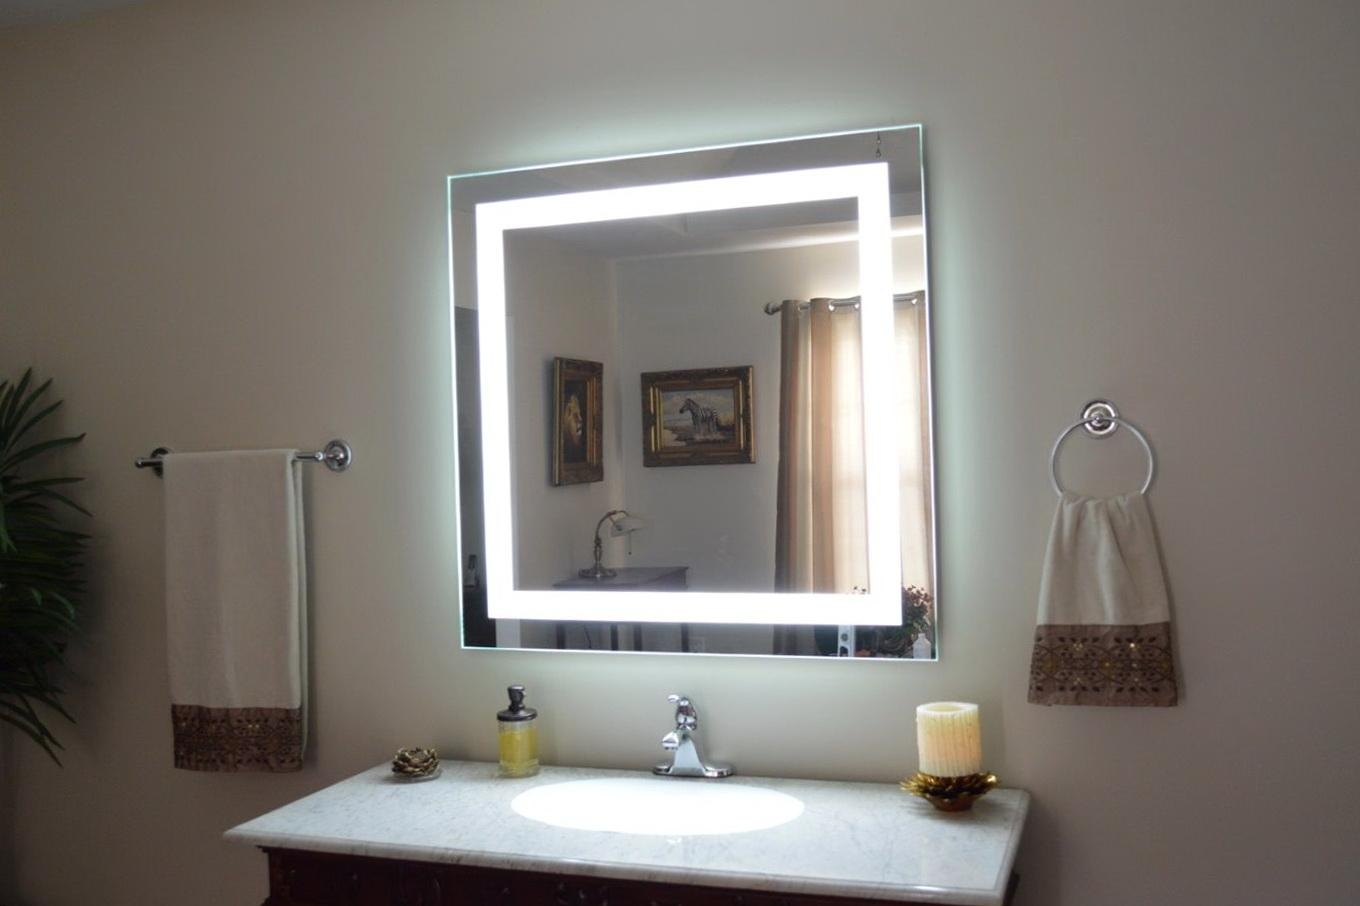 Ikea Bathroom Wall Mirror With Lights Square – Decofurnish Intended For Bathroom Wall Mirrors With Lights (Photo 2 of 20)